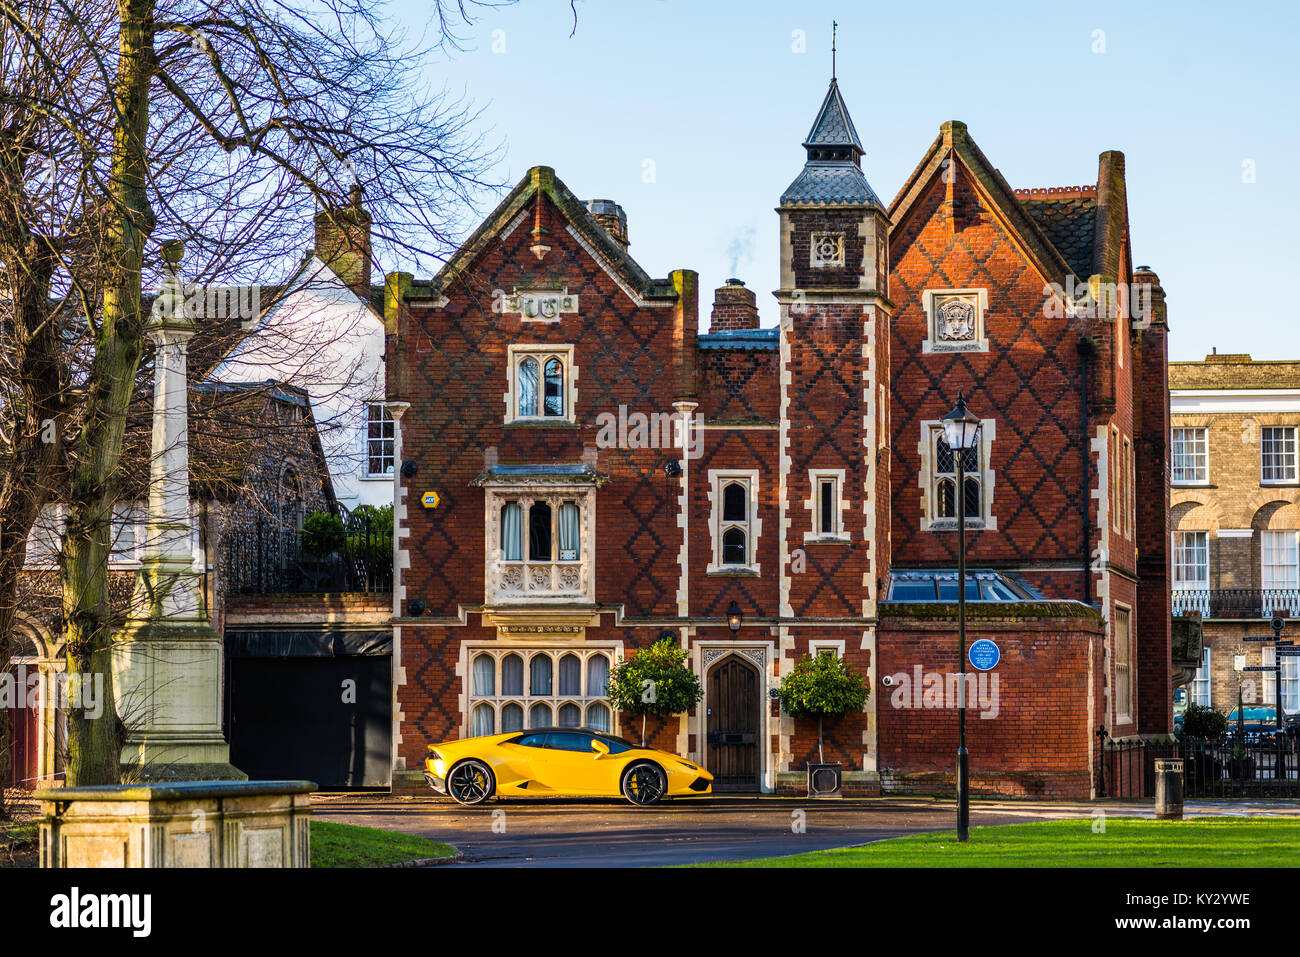 Yellow Lamborghini parked outside grand old house on Chequer Square next to the Norman tower & facing the Great - Stock Image